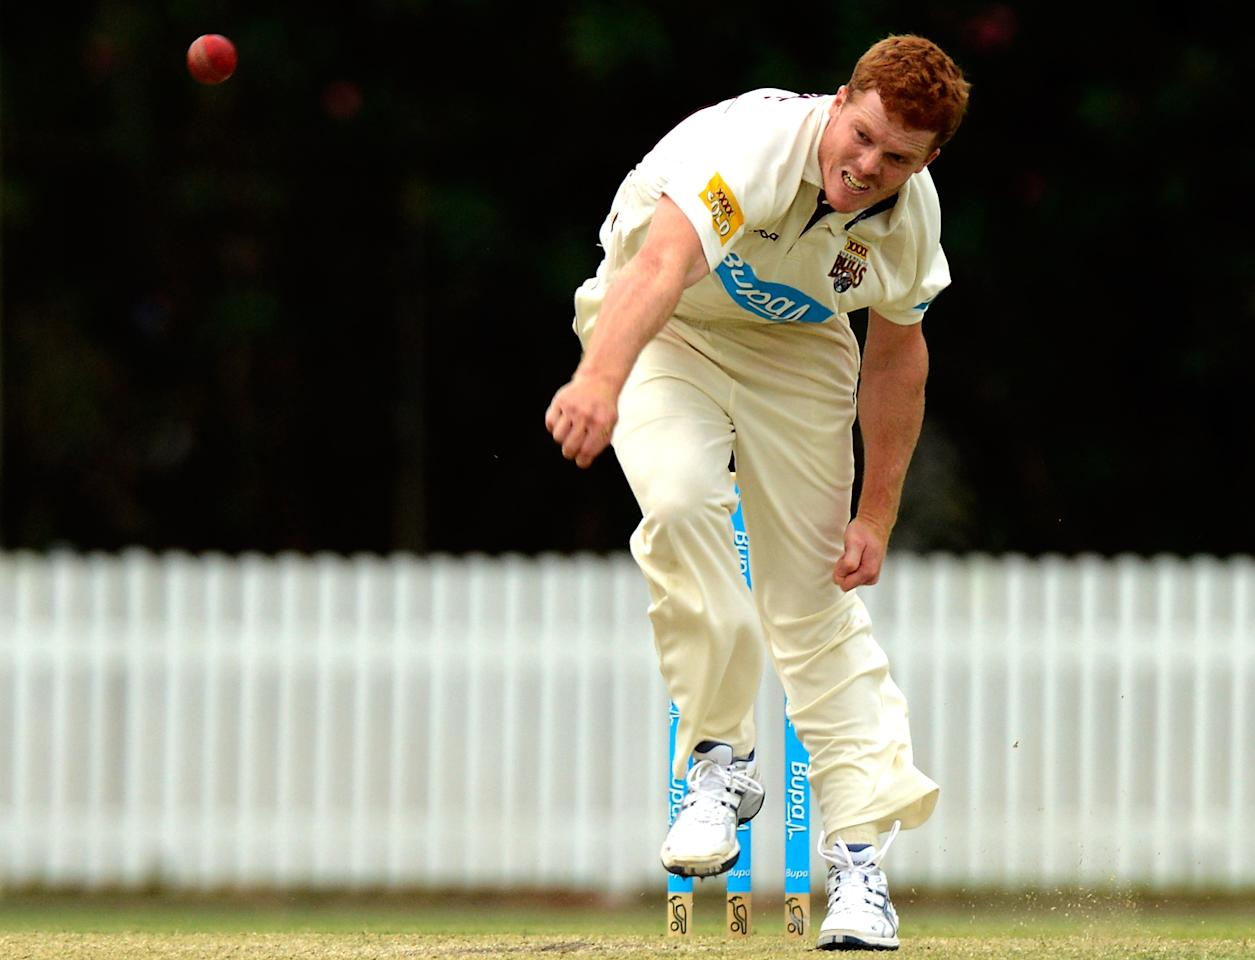 BRISBANE, AUSTRALIA - NOVEMBER 03:   Alister McDermott of the Bulls bowls during the Sheffield Shield match between the Queensland Bulls and the New South Wales Blues at Allan Border Field on November 3, 2012 in Brisbane, Australia.(Photo by Bradley Kanaris/Getty Images)